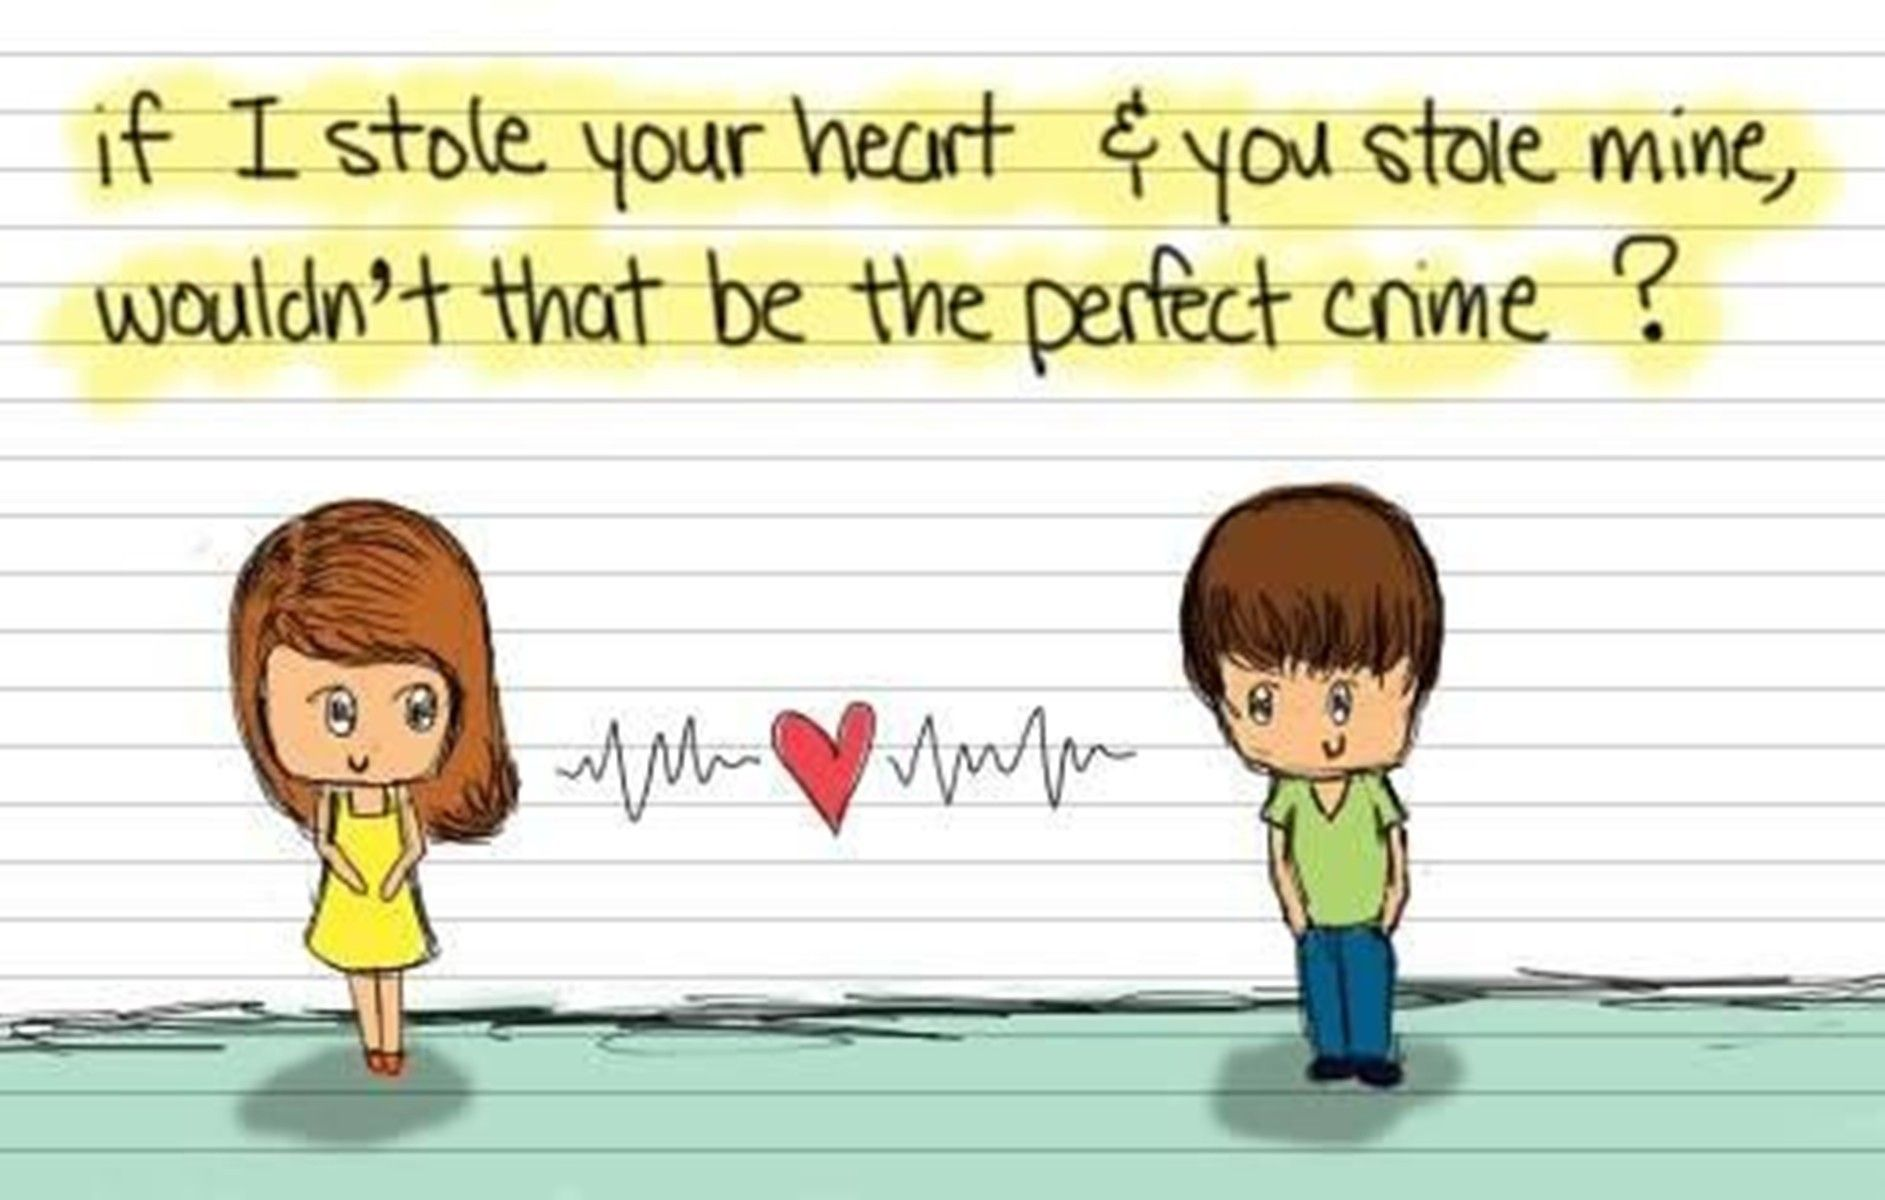 Famous Love Quotes For Her Cute Love Quotes Love Quotes For Her Love Quotes With Images